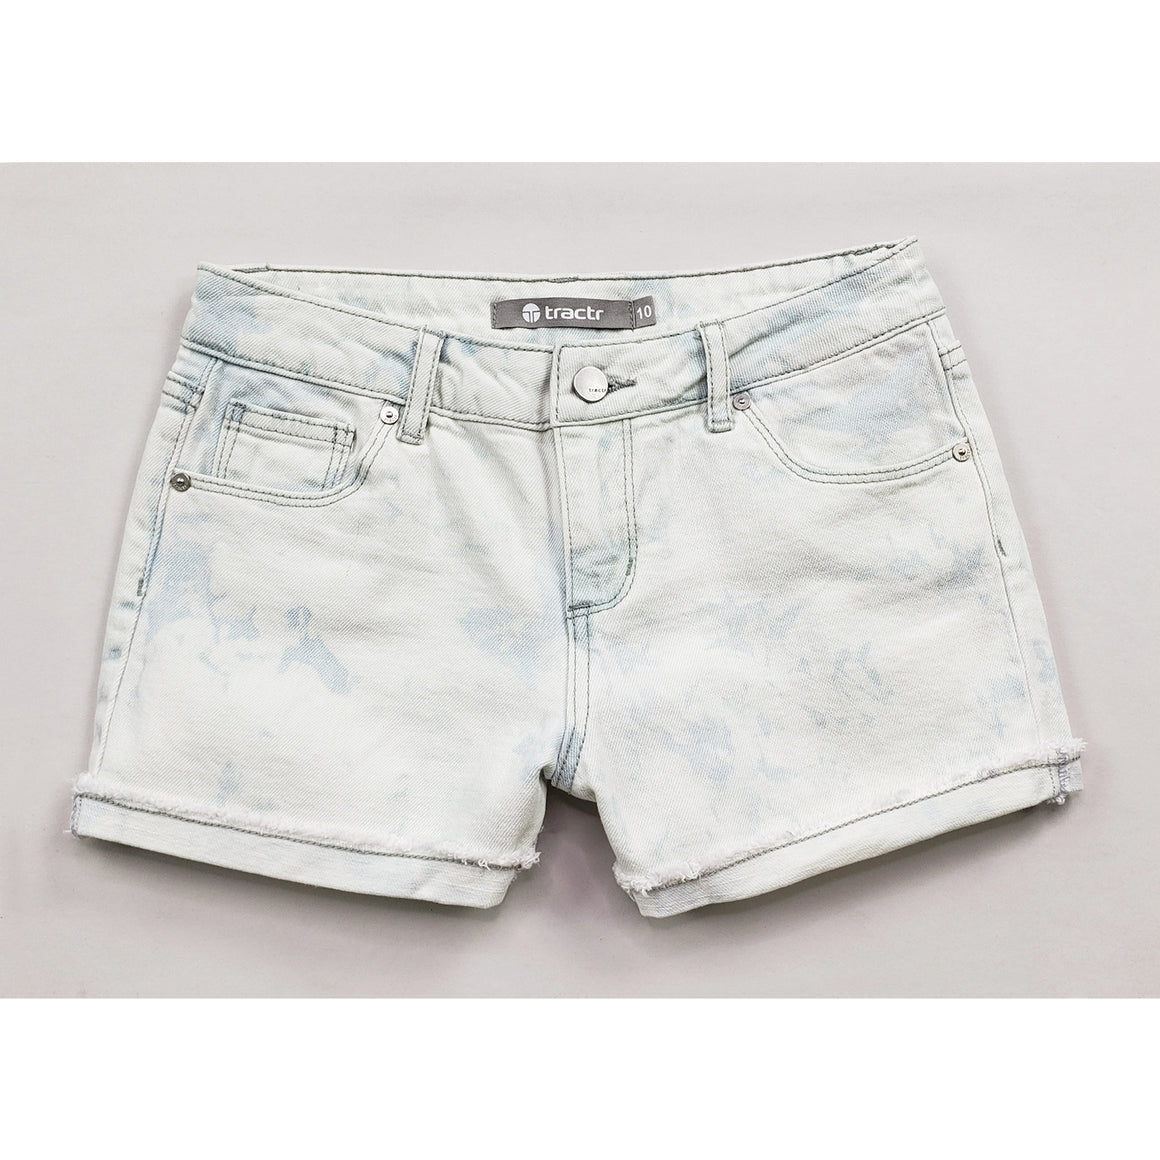 Tractr Girls | Brittany Mid-Rise Cuffed Shorts | Tie Dye Bleached Denim